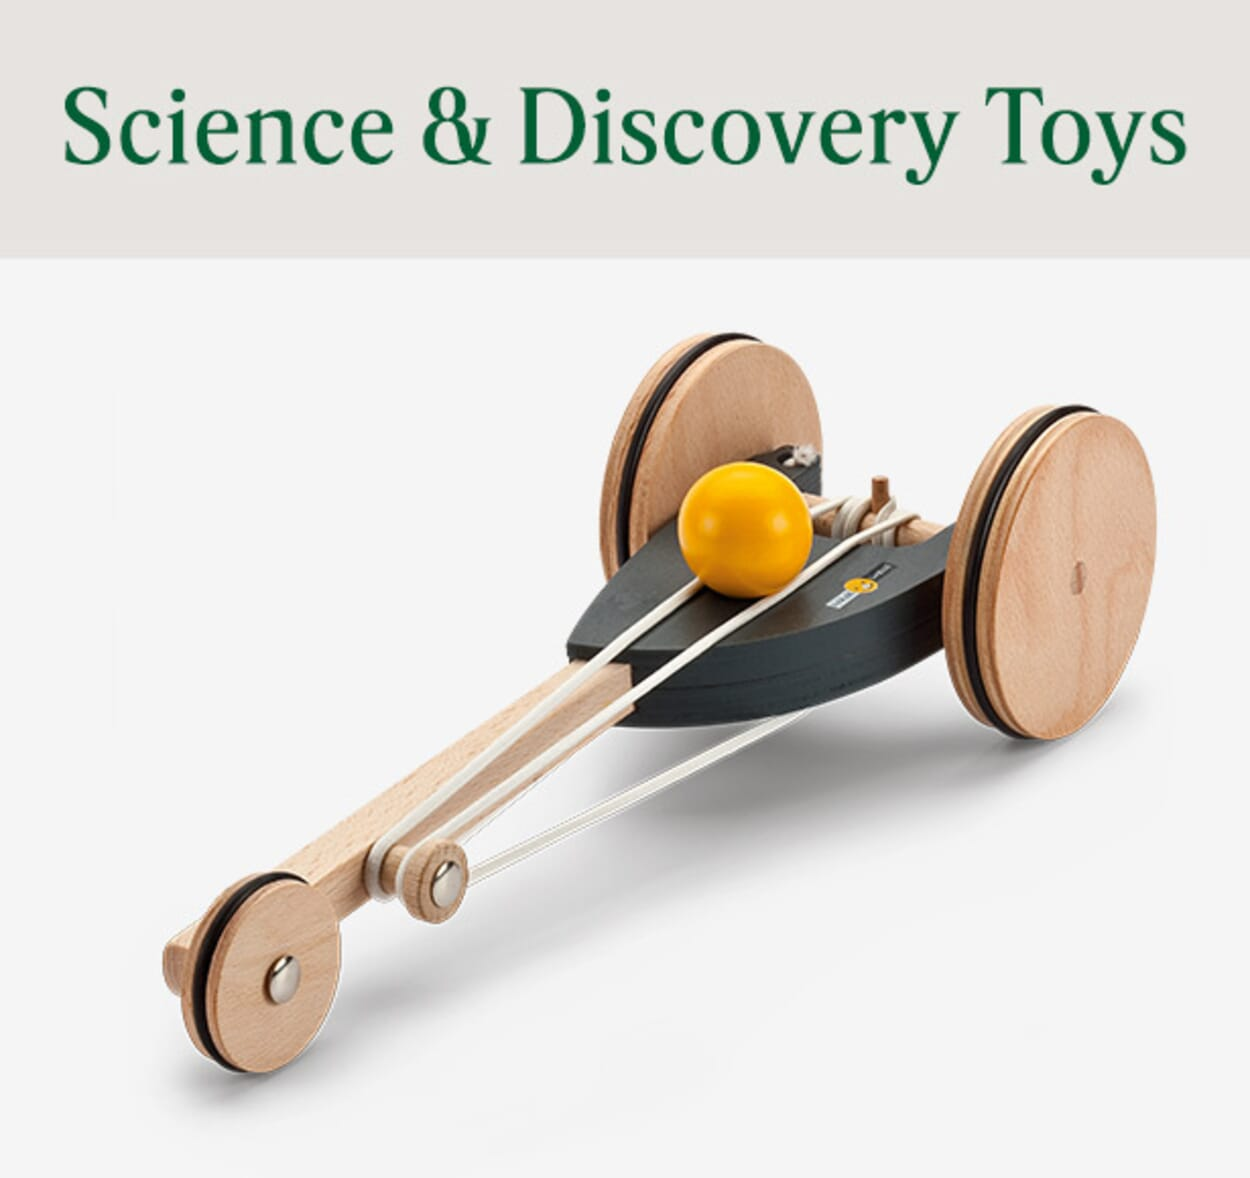 Science & Discovery Toys